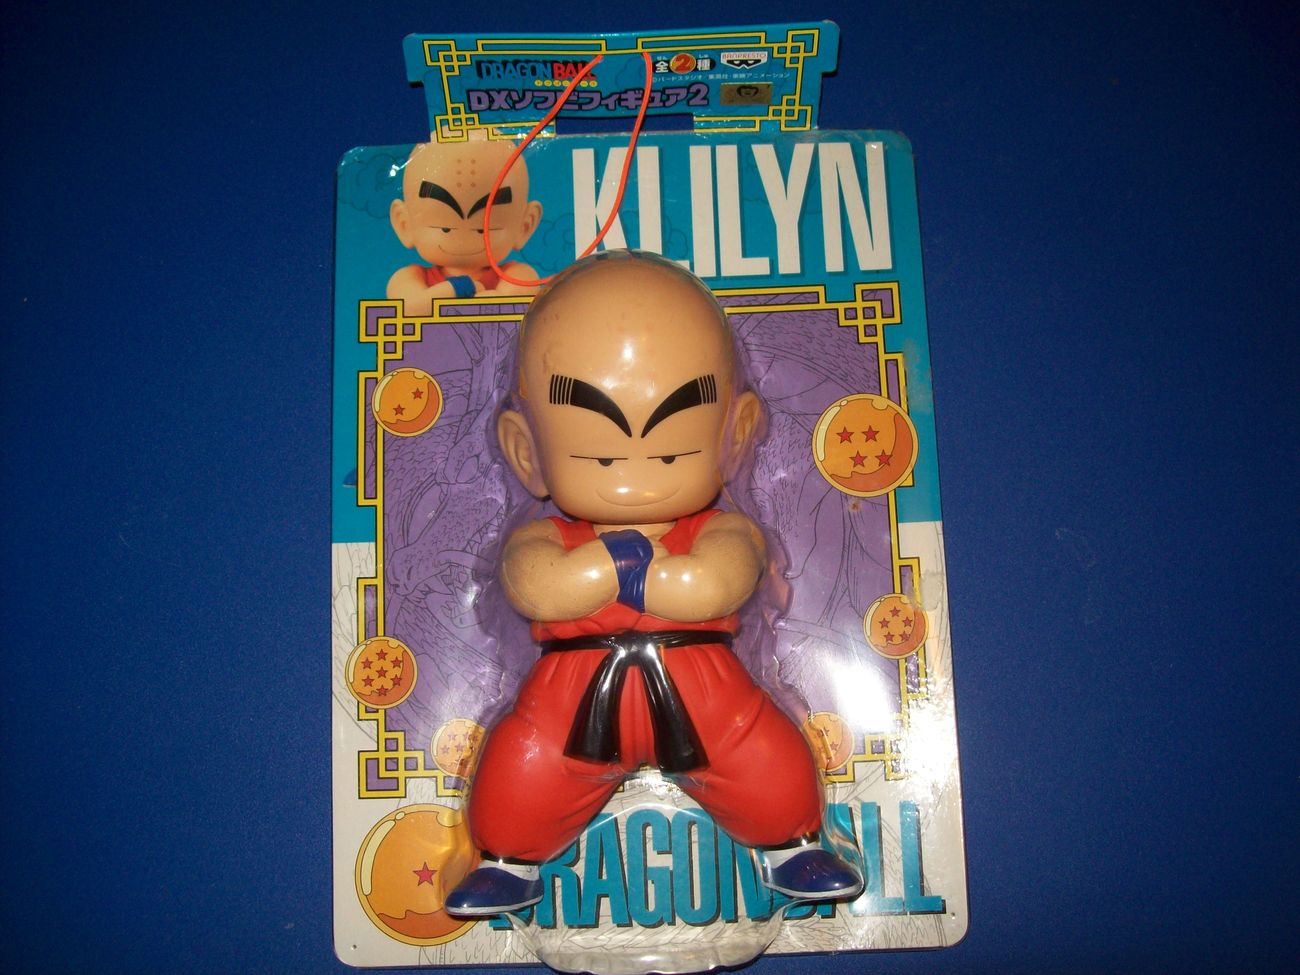 "klilyn krillin dragonball z pvc figure 8"" rare nip banpresto open to offers"